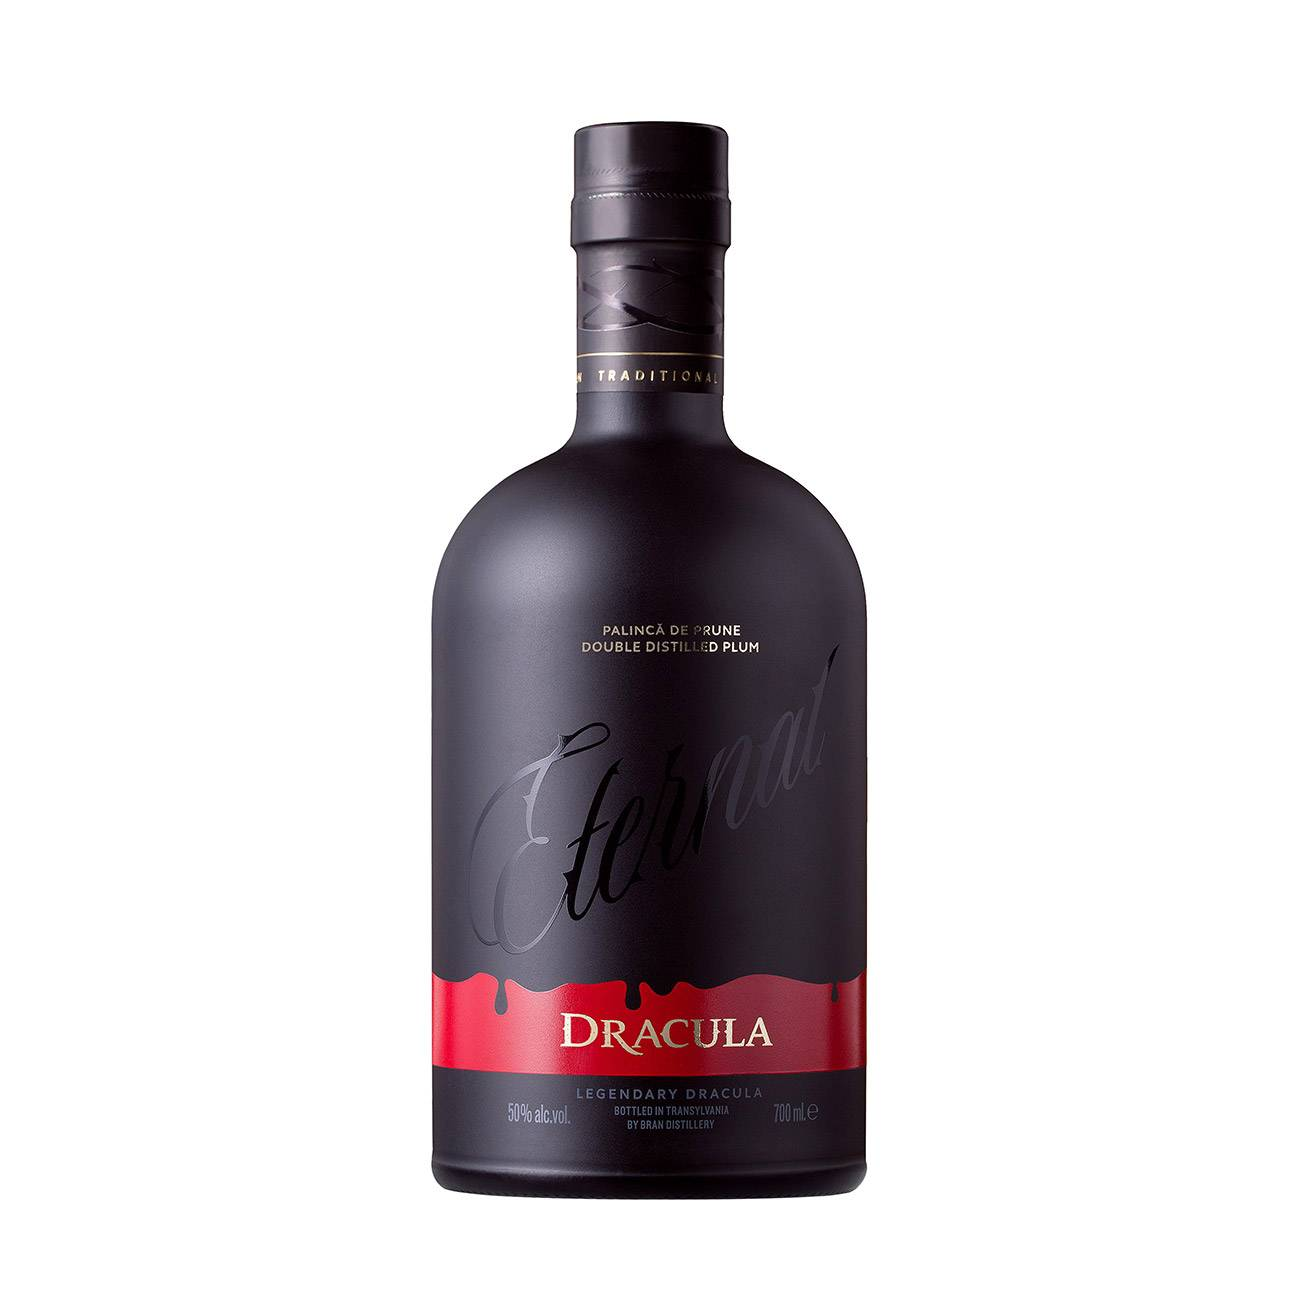 Spirtoase romanesti, ETERNAL DRACULA 700 ML 700 Ml, Legendary Dracula